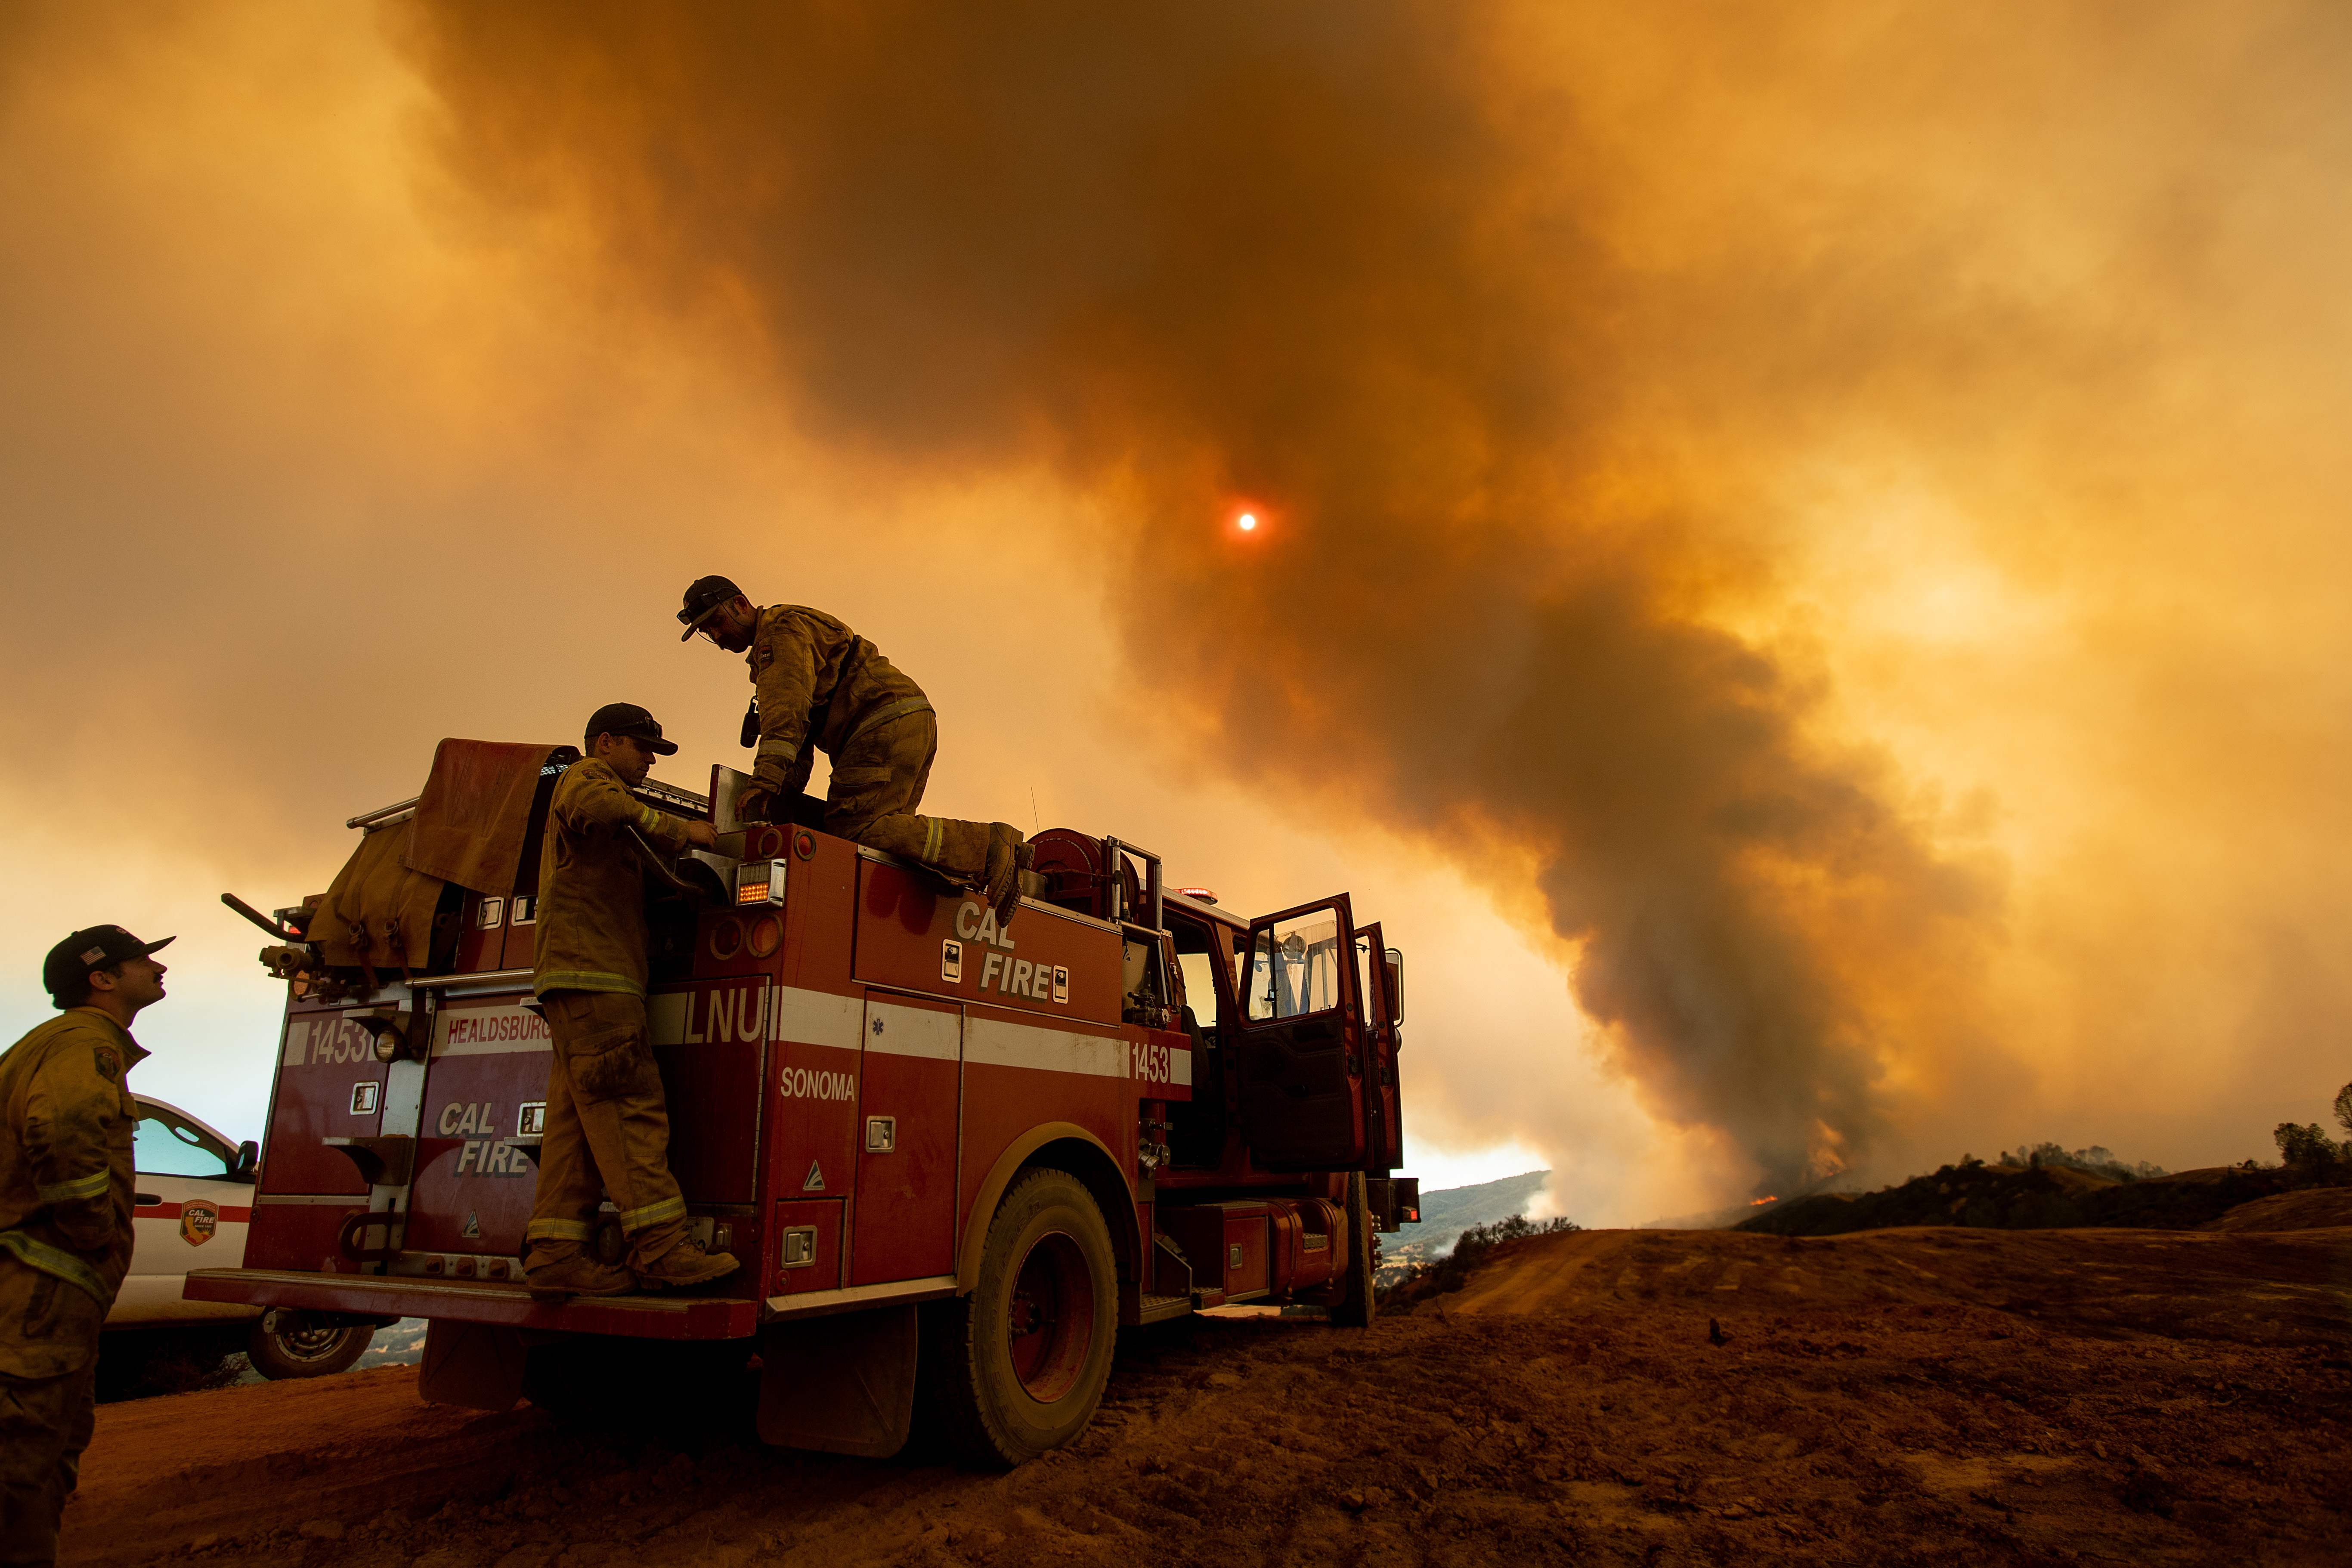 Mendocino Complex Fire, the largest ever in California, is still growing